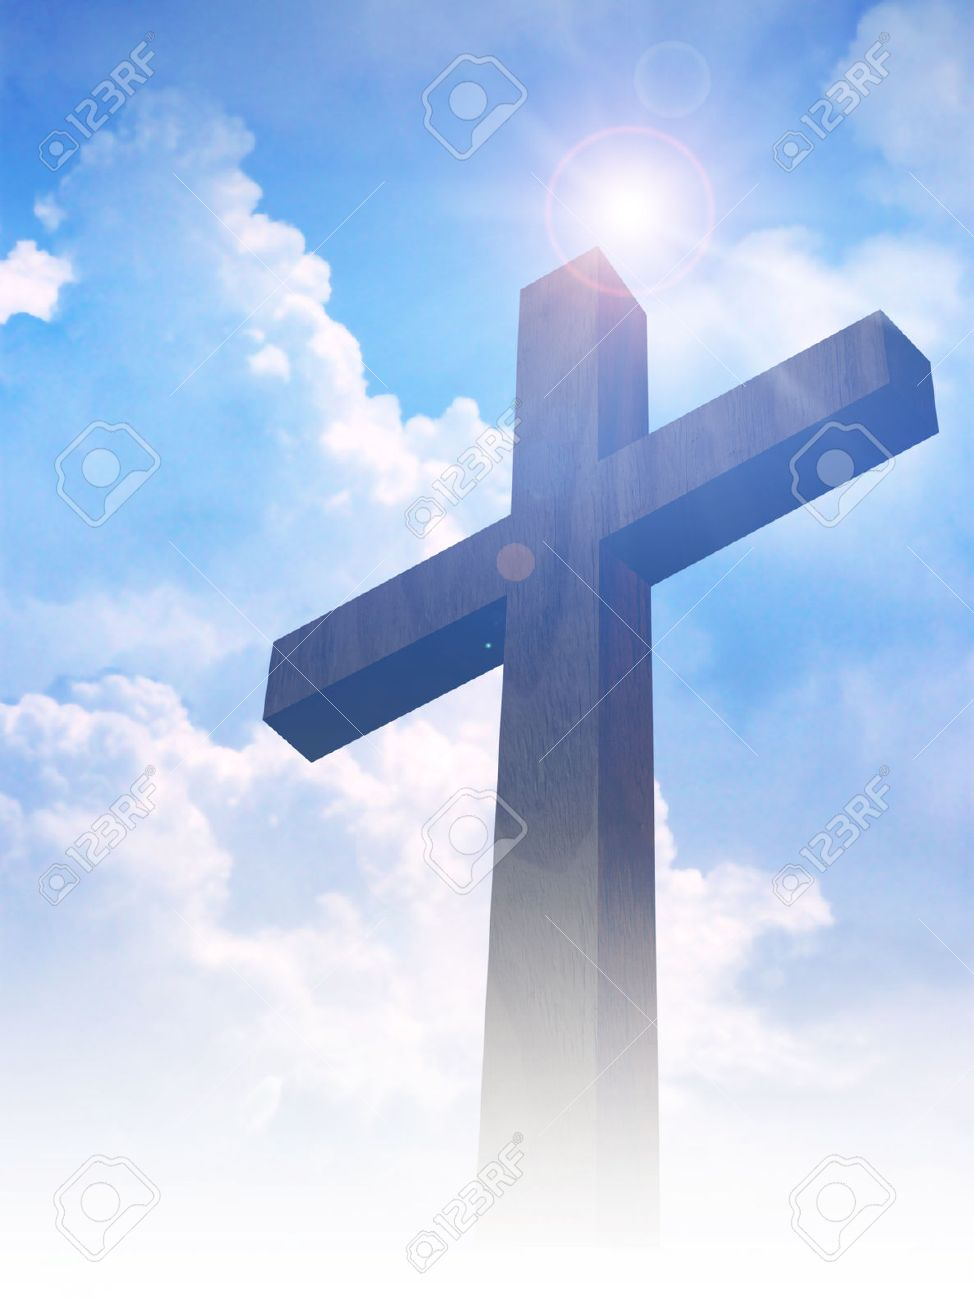 Silhouette of the holy cross on background of storm clouds stock - Clouds Cross A Cross On Clouds Background Stock Photo